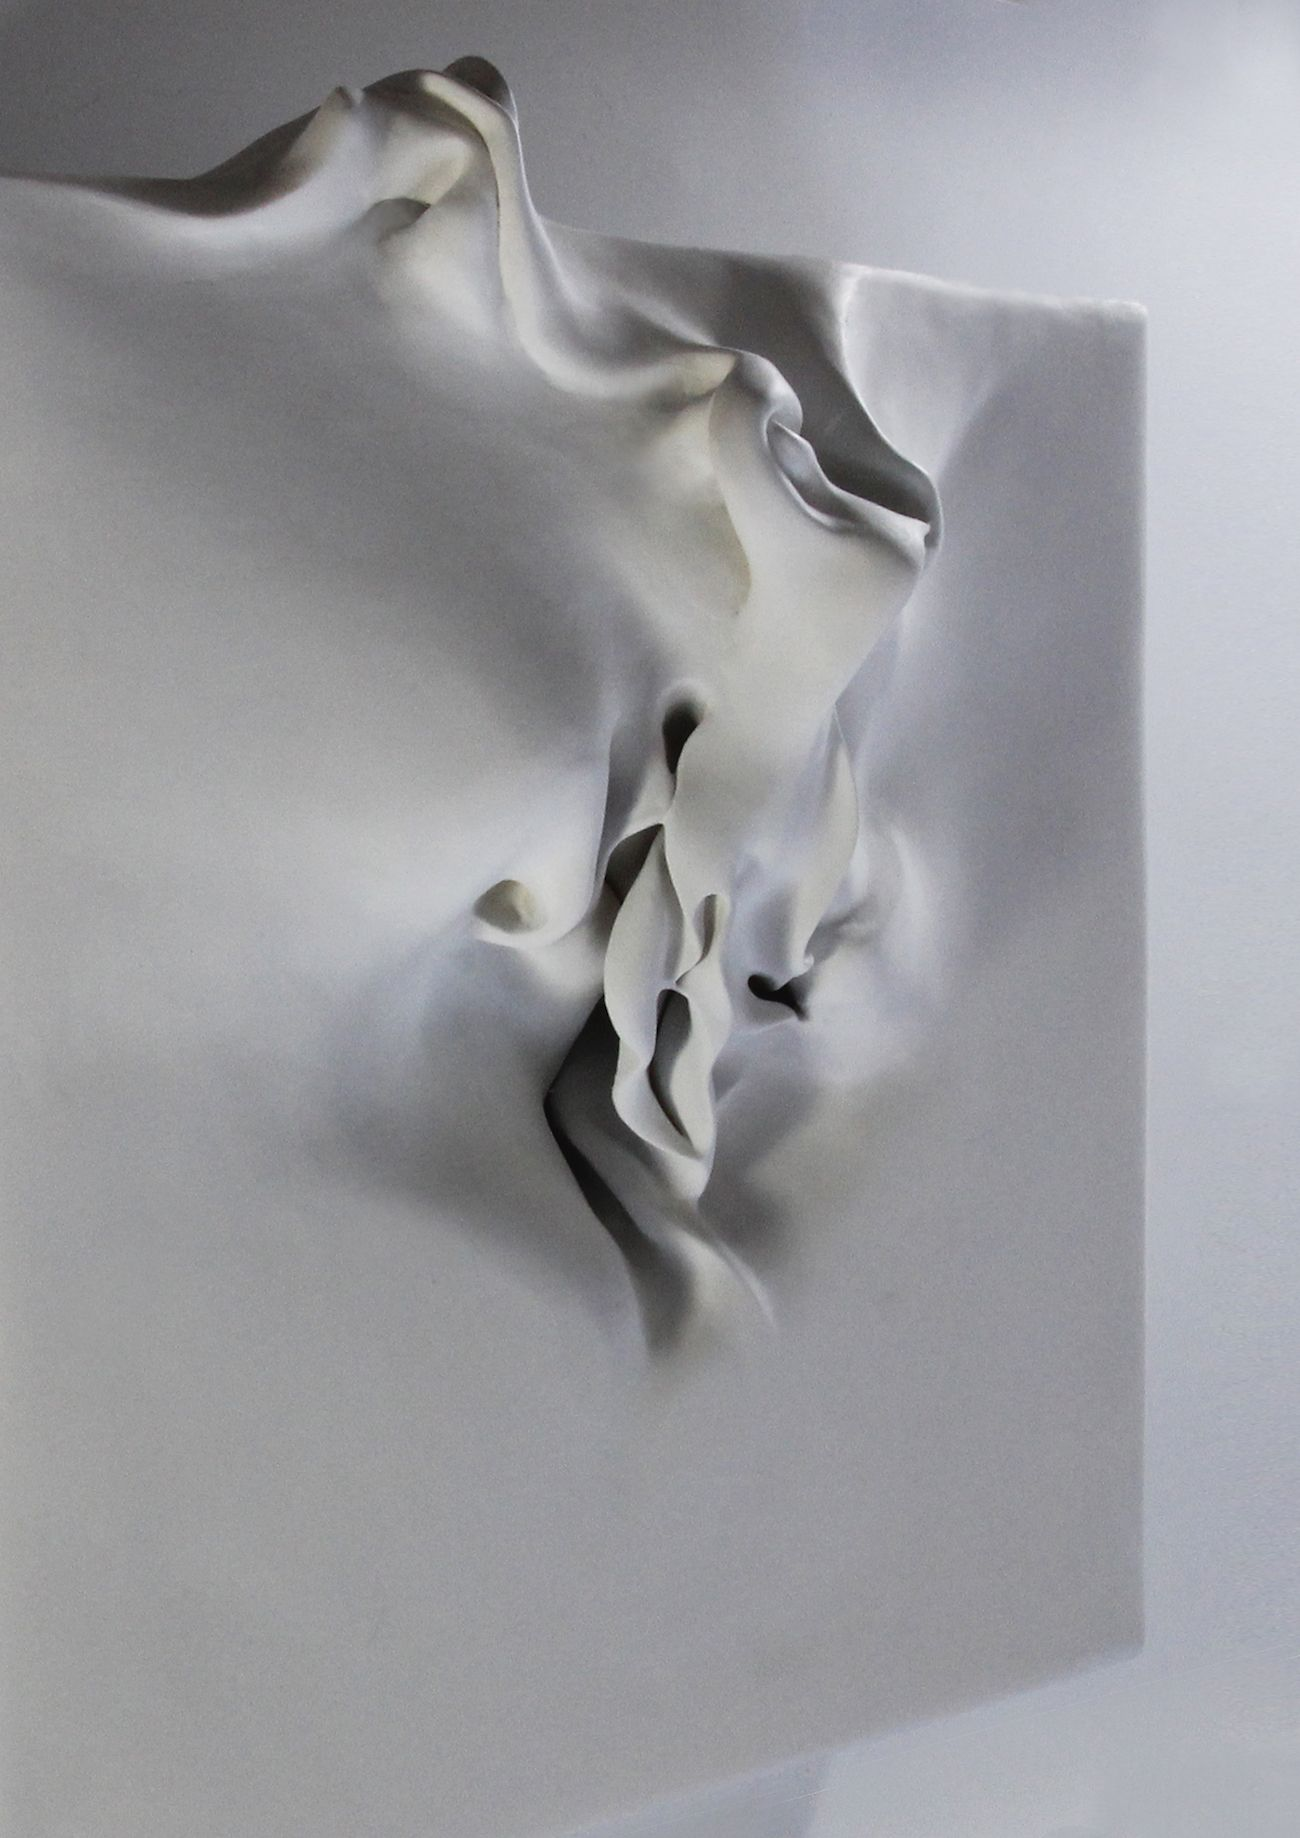 Be-Formed 3,Sharon Brill,Sculpture contemporaine, detail 1